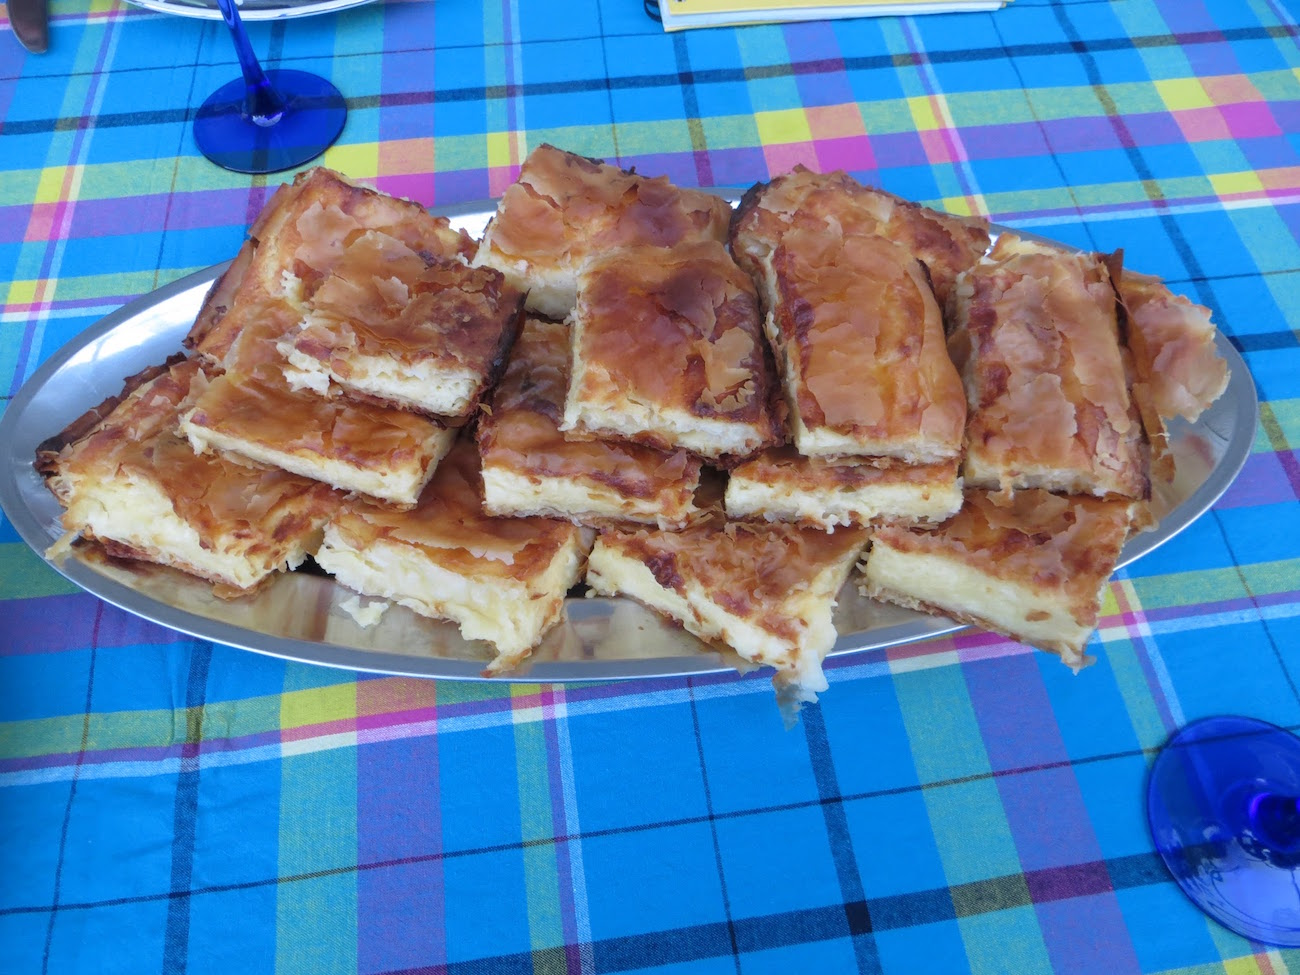 Bosnian sirnica cheese pie